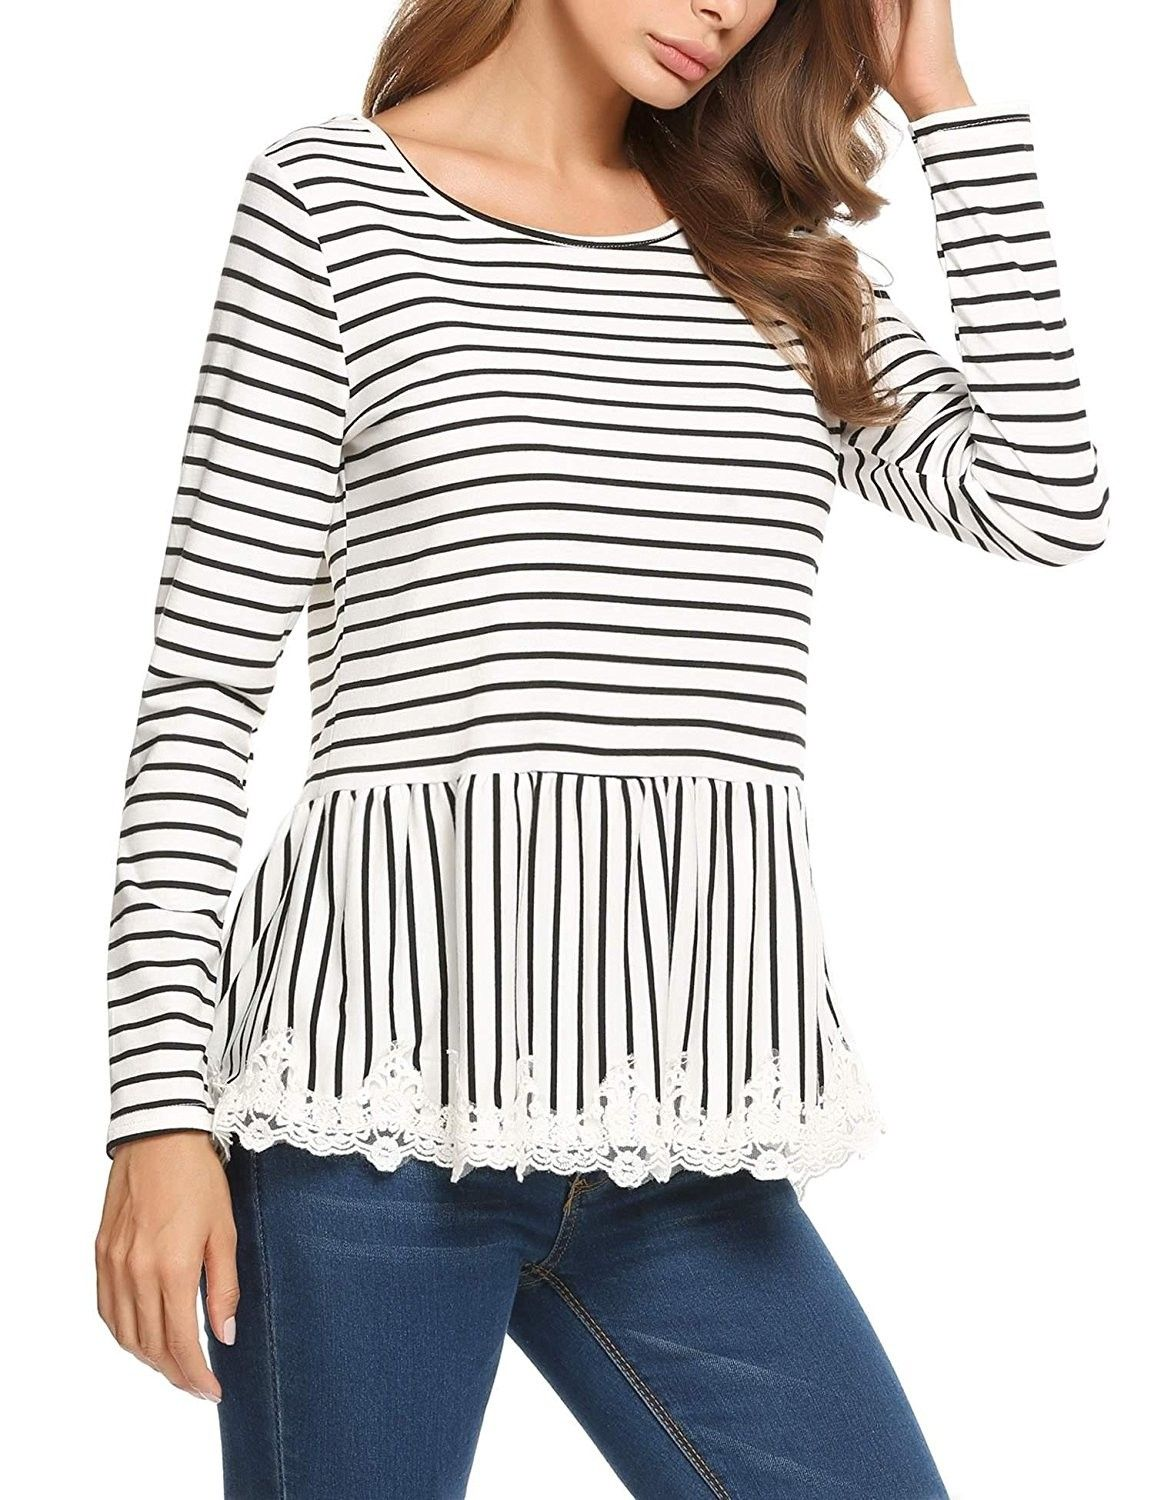 a2aaeddd5 Women's Clothing, Tops & Tees, Knits & Tees,Women's Casual Long Sleeve  Striped Frill Lace Trim Tops Shirt - Black - CL185209WUI #Clothing #Tops  #Tees #women ...